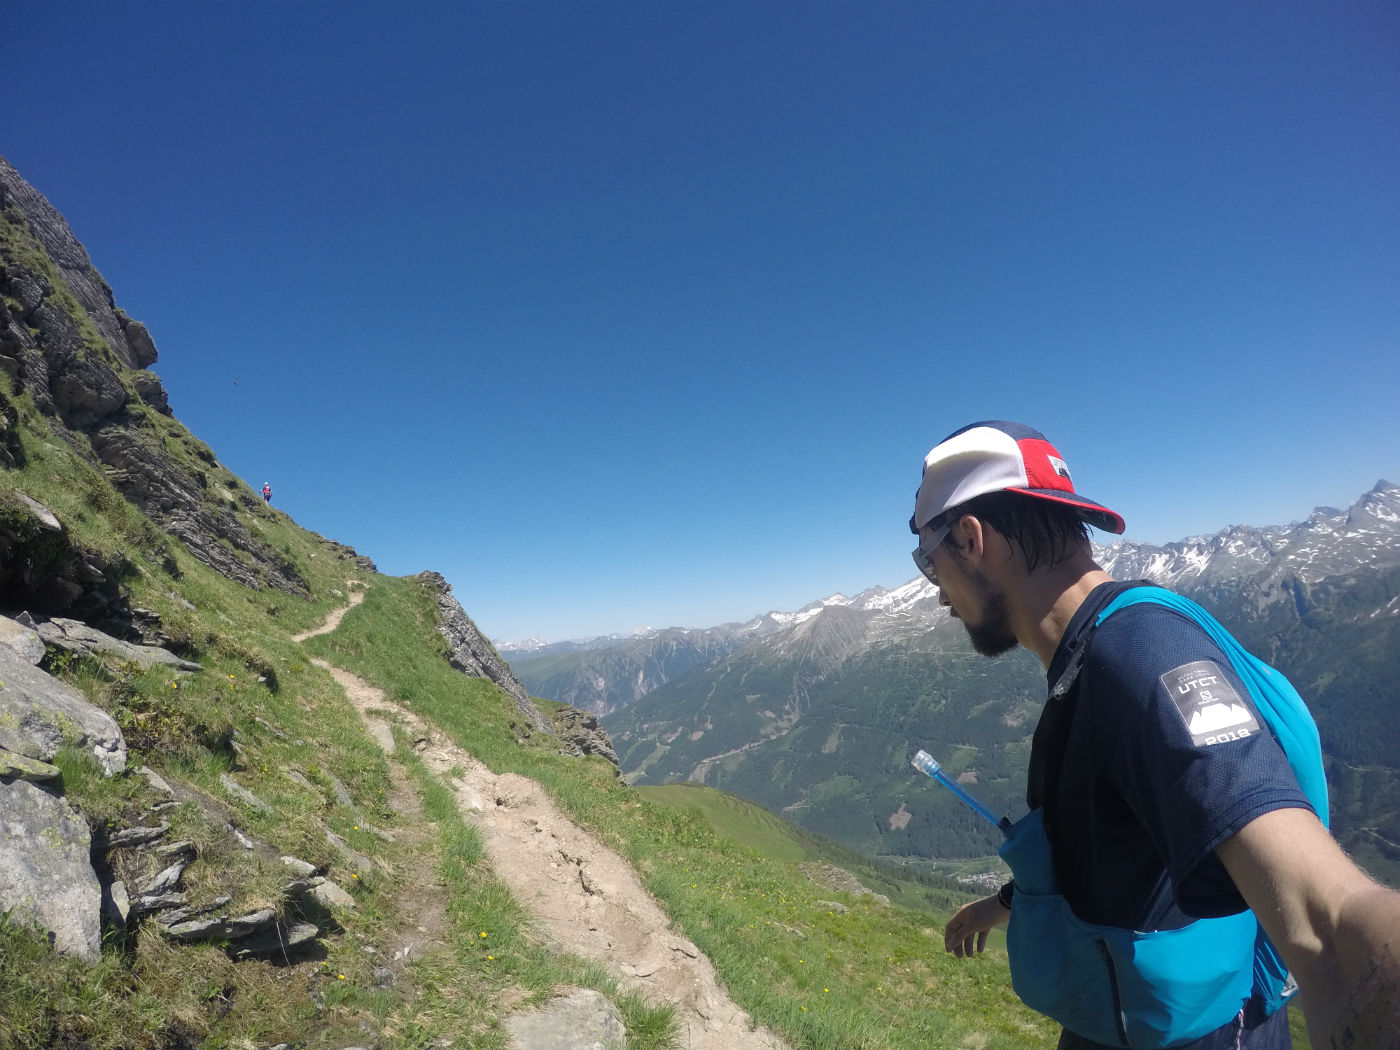 Chasing the red backpack up to Zitterauer Tisch